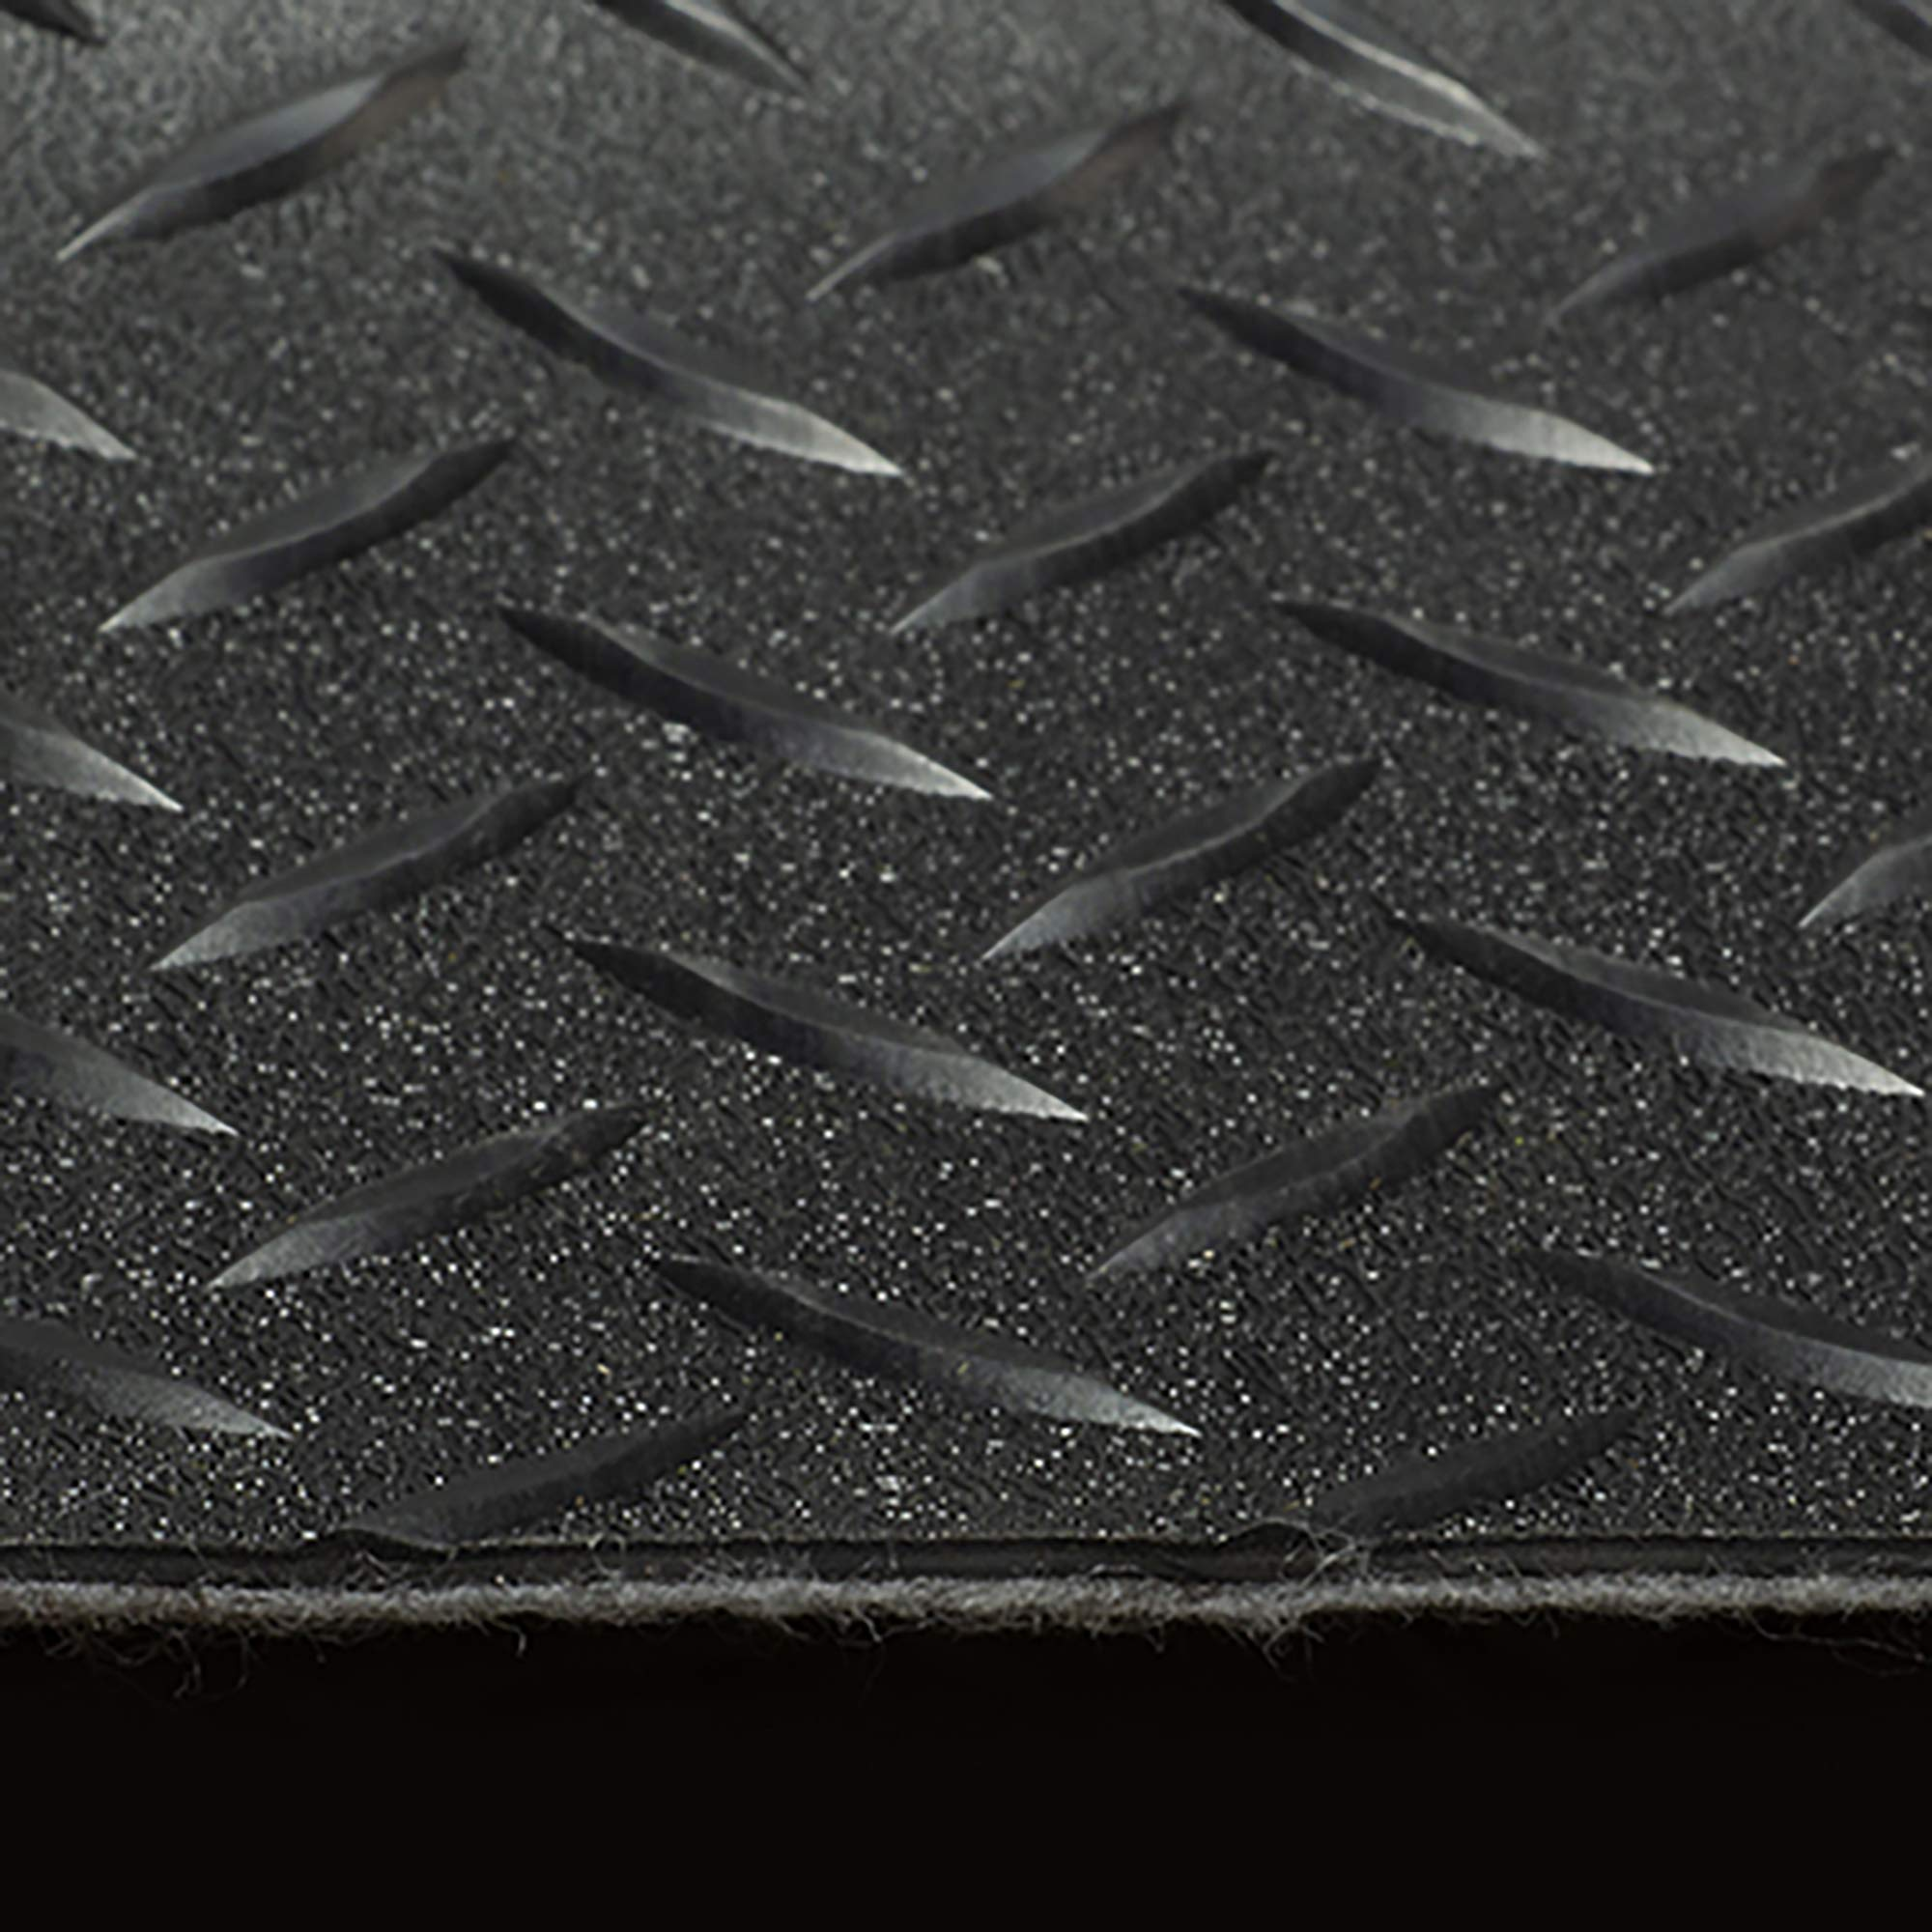 RV Trailer Diamond Plate Pattern Flooring | Black | 8' 2'' Wide | Rubber Flooring | Garage Flooring | Gym Flooring | Toy Hauler Flooring | Car Show Trailer Flooring (Black, 15') by RecPro (Image #2)